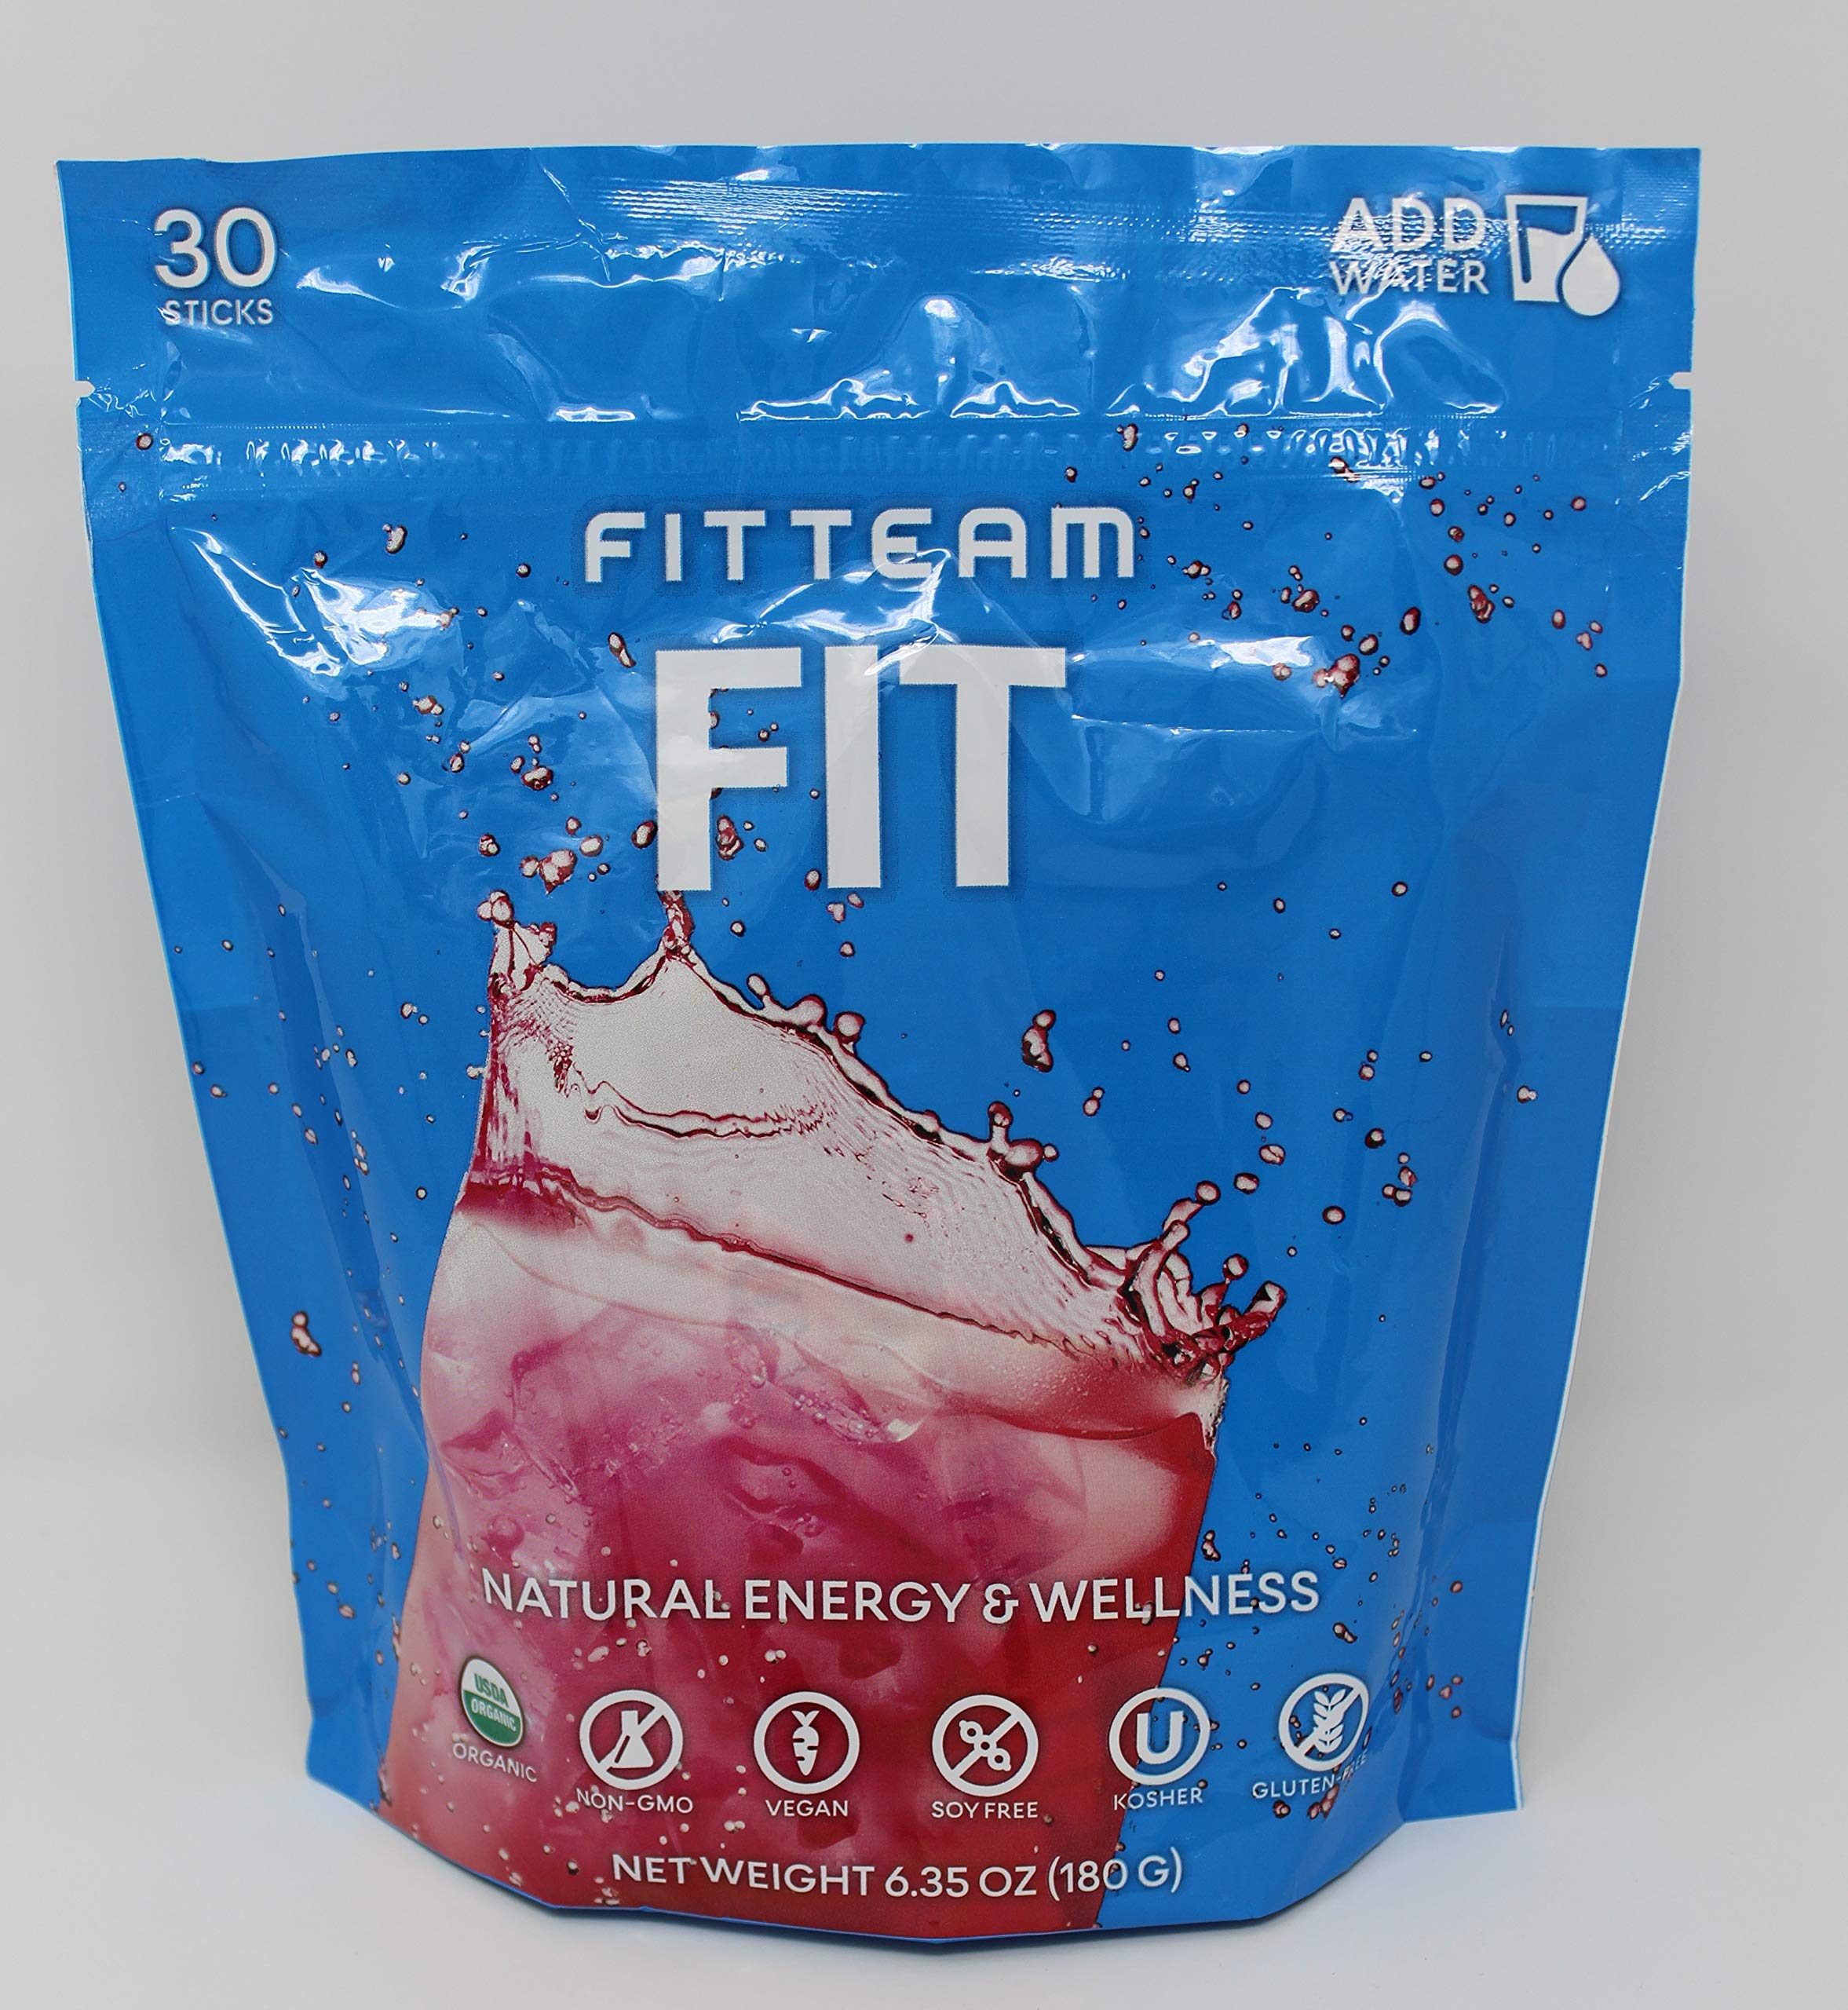 Energy Weight Loss Drink Fitteam Fit Sticks,Organic, GF, DF Vegan - 30 Sticks